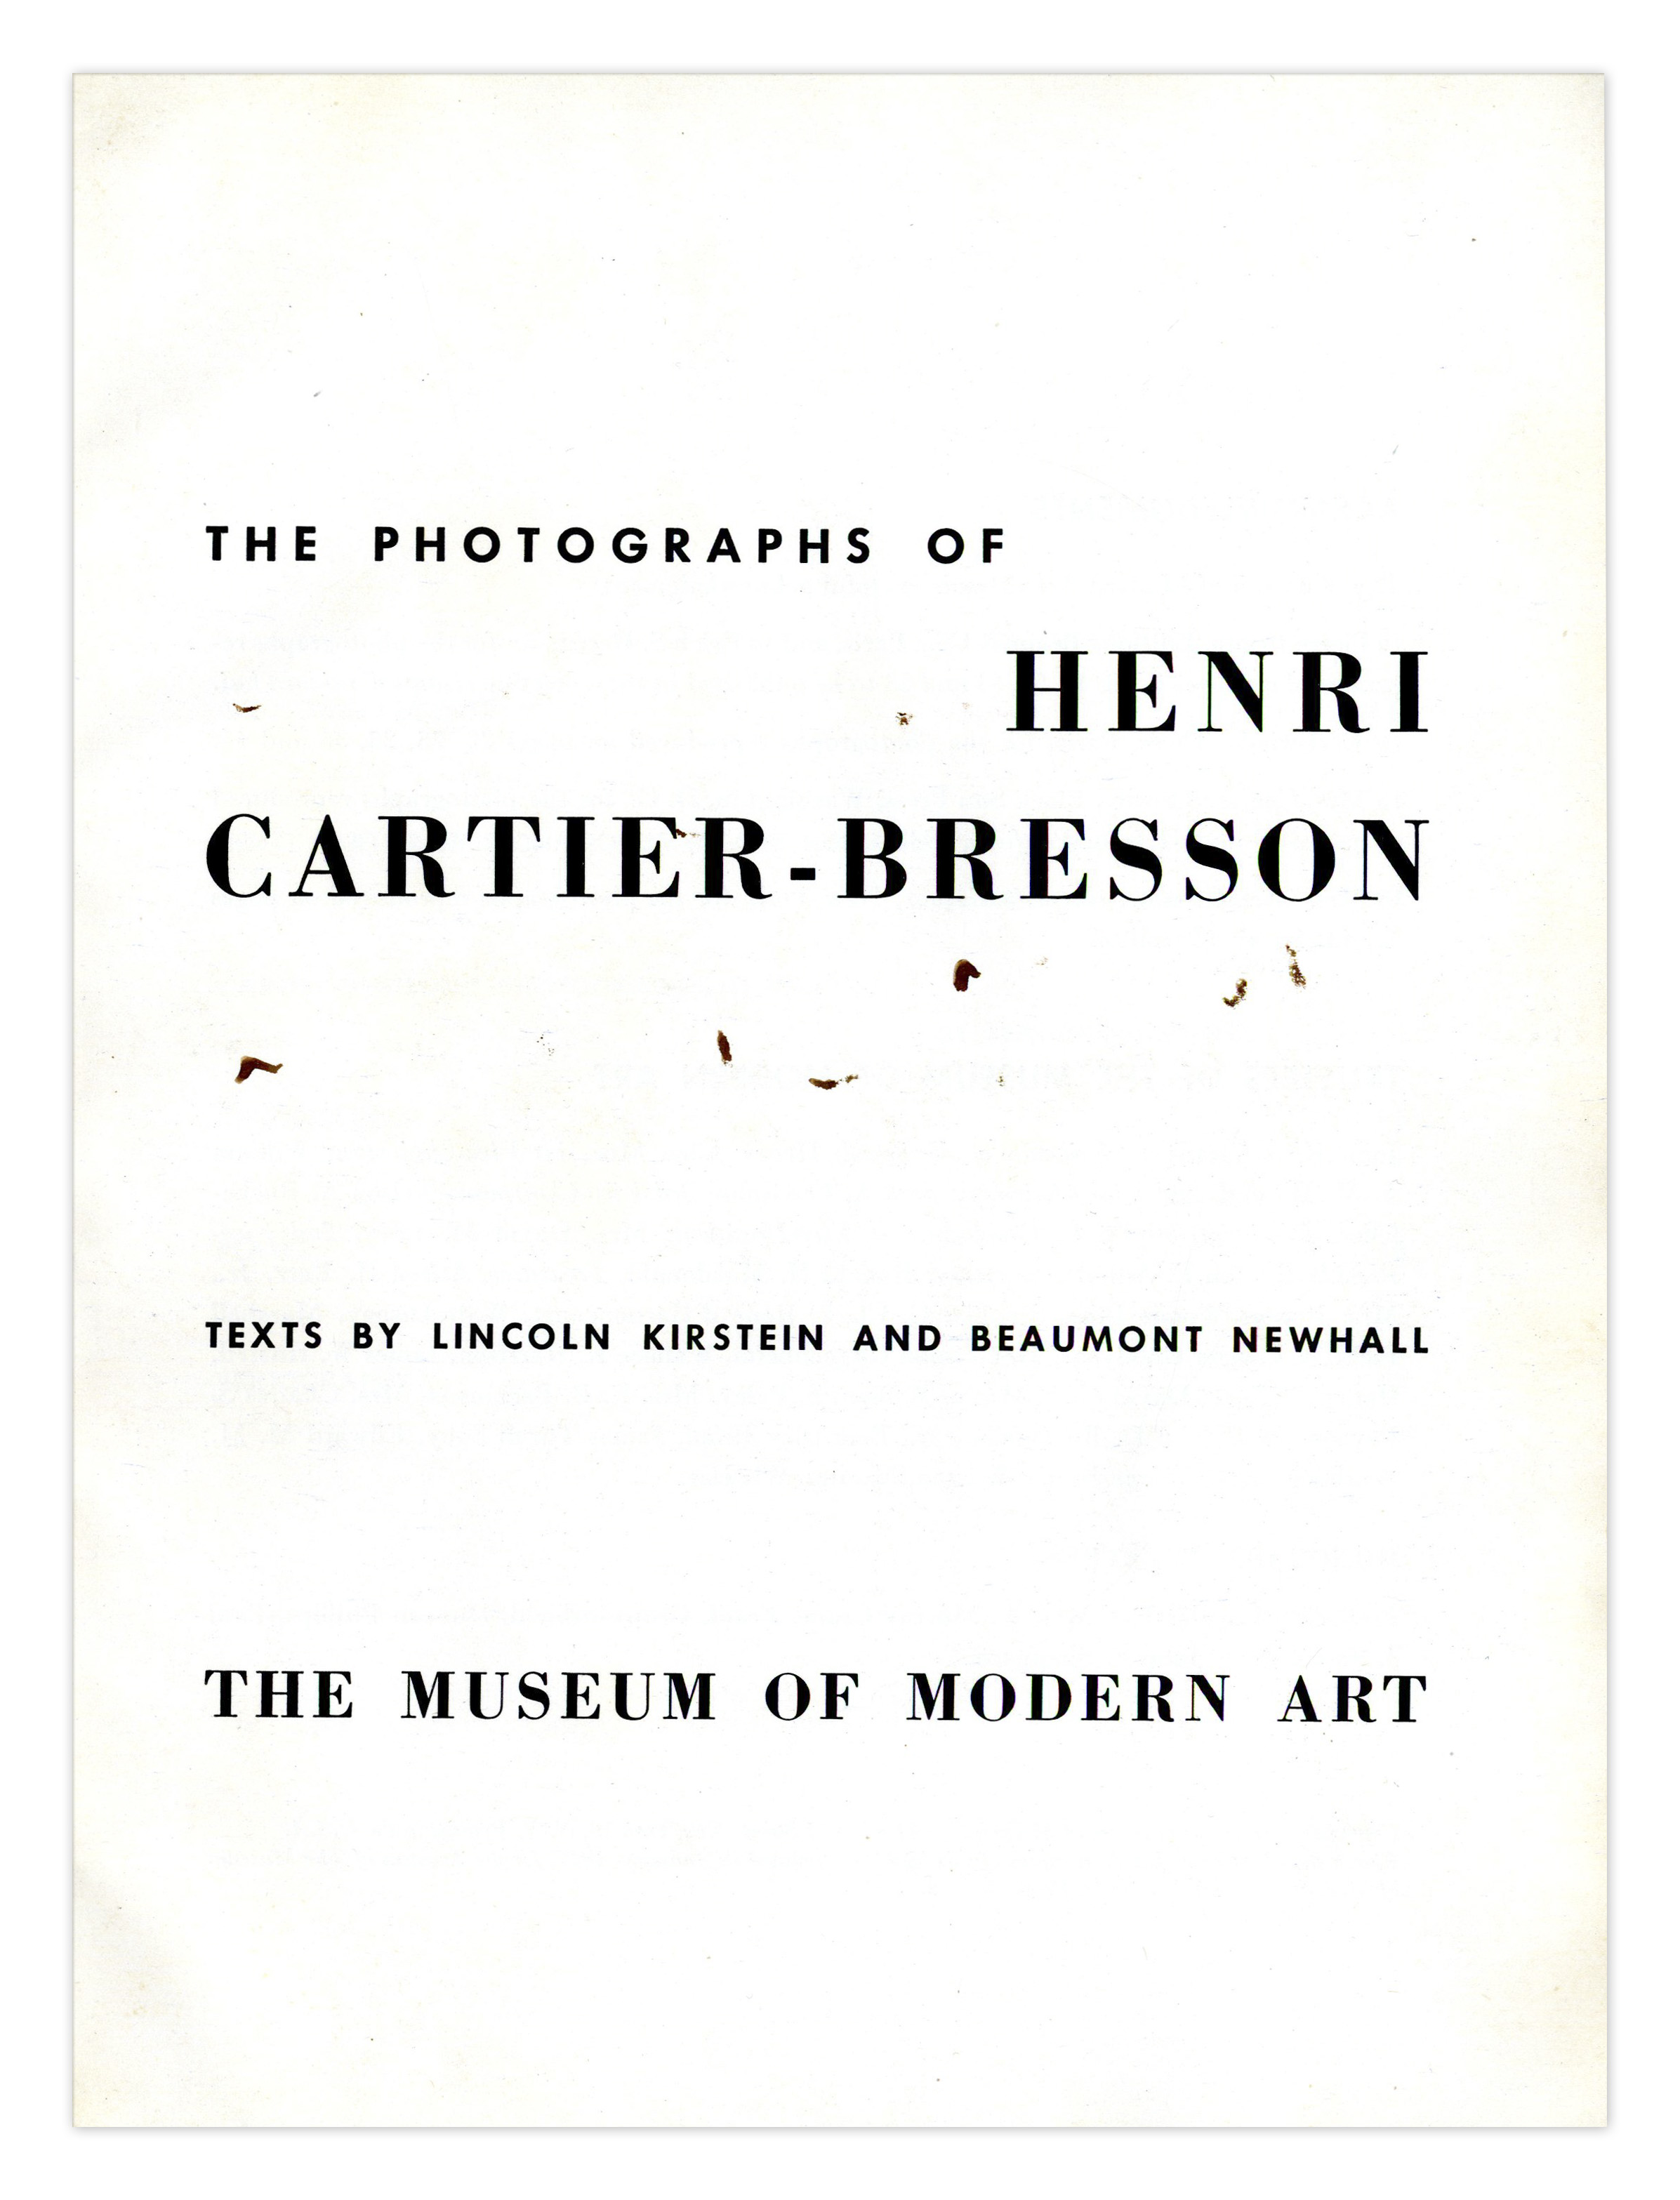 an introduction to henri cartier bresson father of modern day street photography Henri cartier-bresson is considered by many to be the father of modern photojournalism his style of street photography using small format cameras remains influential to this day.